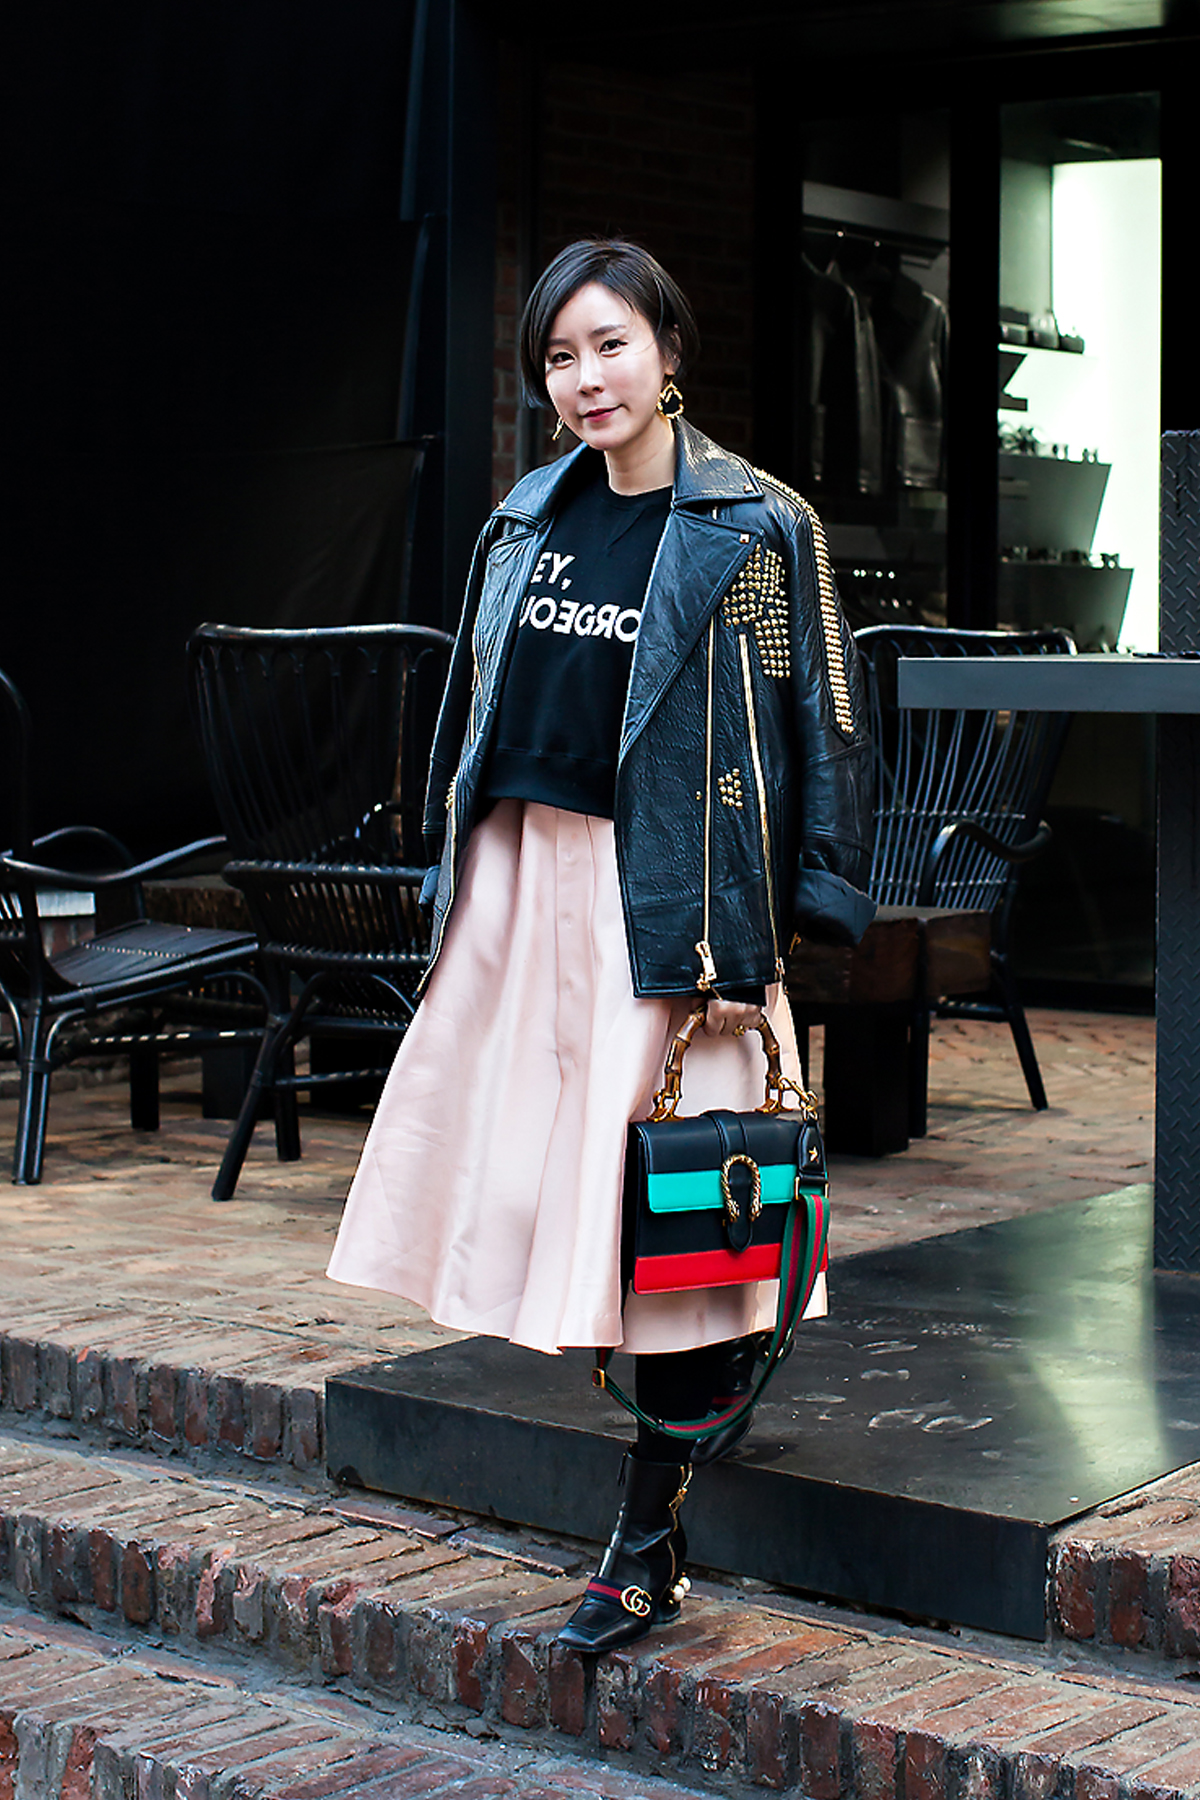 Lee Juhee, Street Fashion SEOUL.jpg